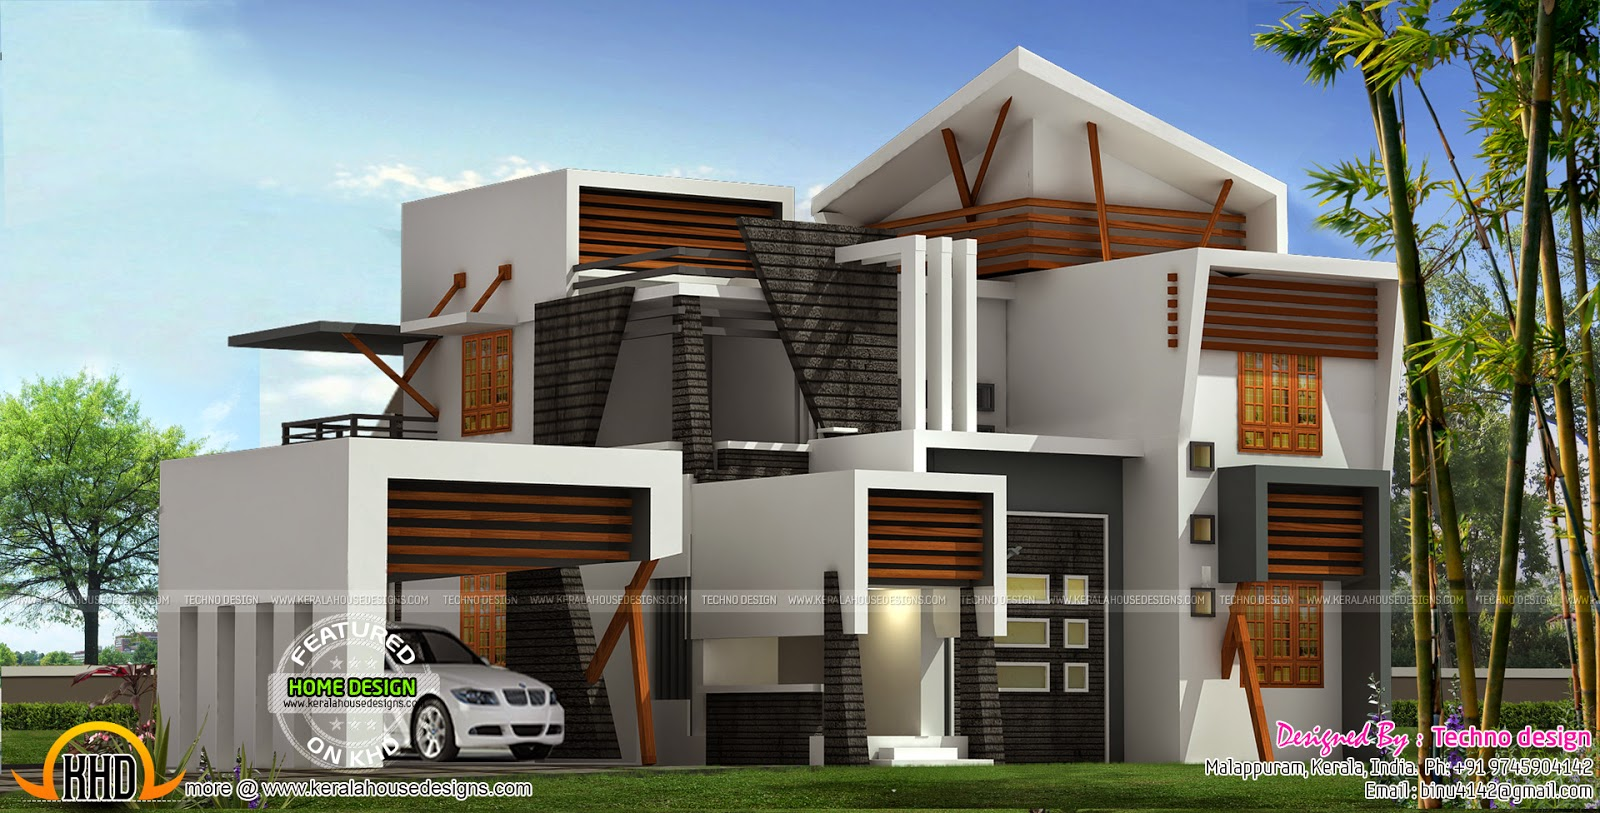 Modern 214 square meter house plan kerala home design for 500 square meters house design